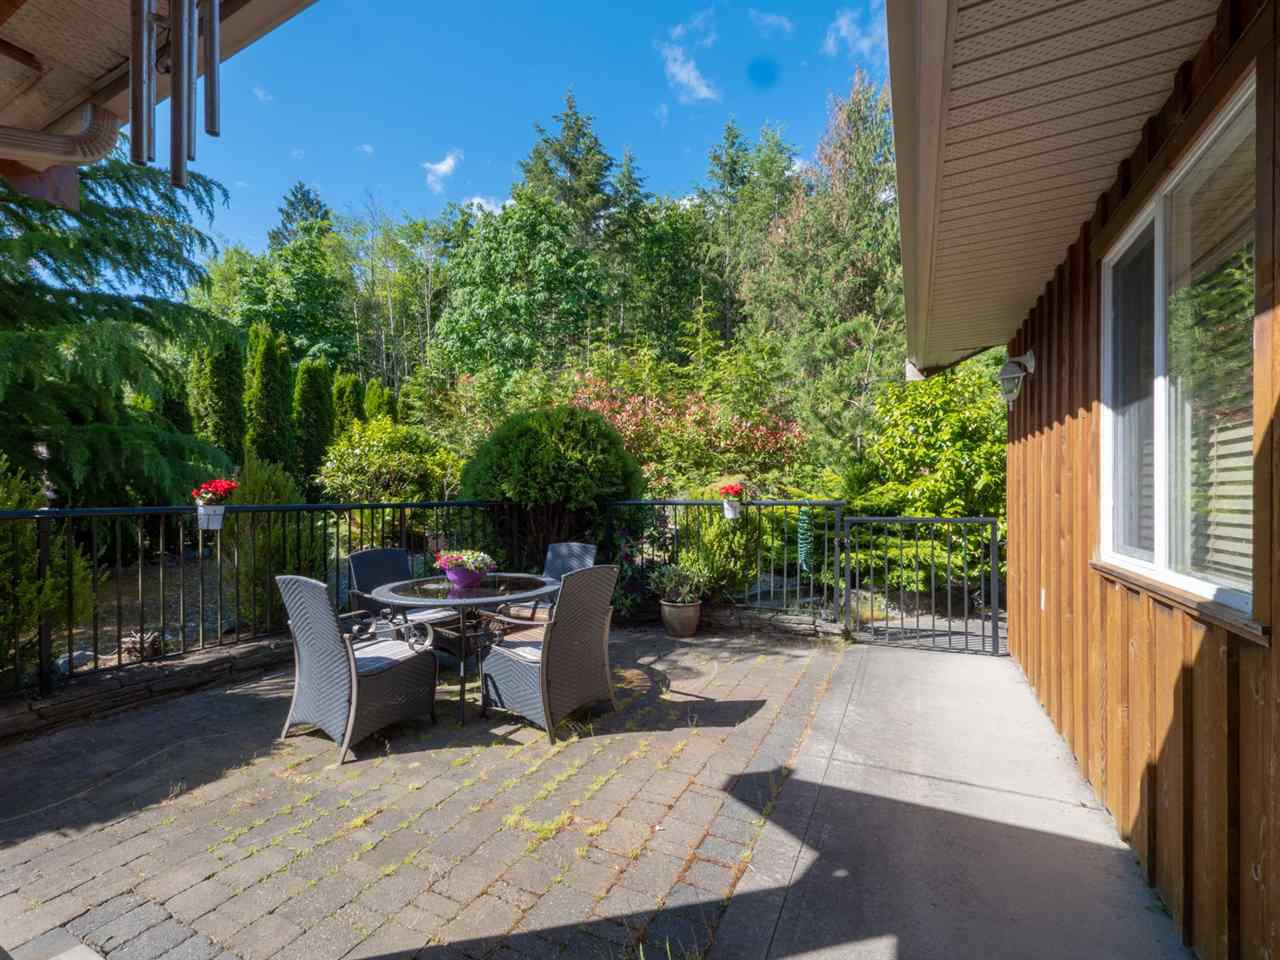 """Photo 14: Photos: 6148 POISE ISLAND Drive in Sechelt: Sechelt District House for sale in """"POISE ISLAND"""" (Sunshine Coast)  : MLS®# R2426642"""